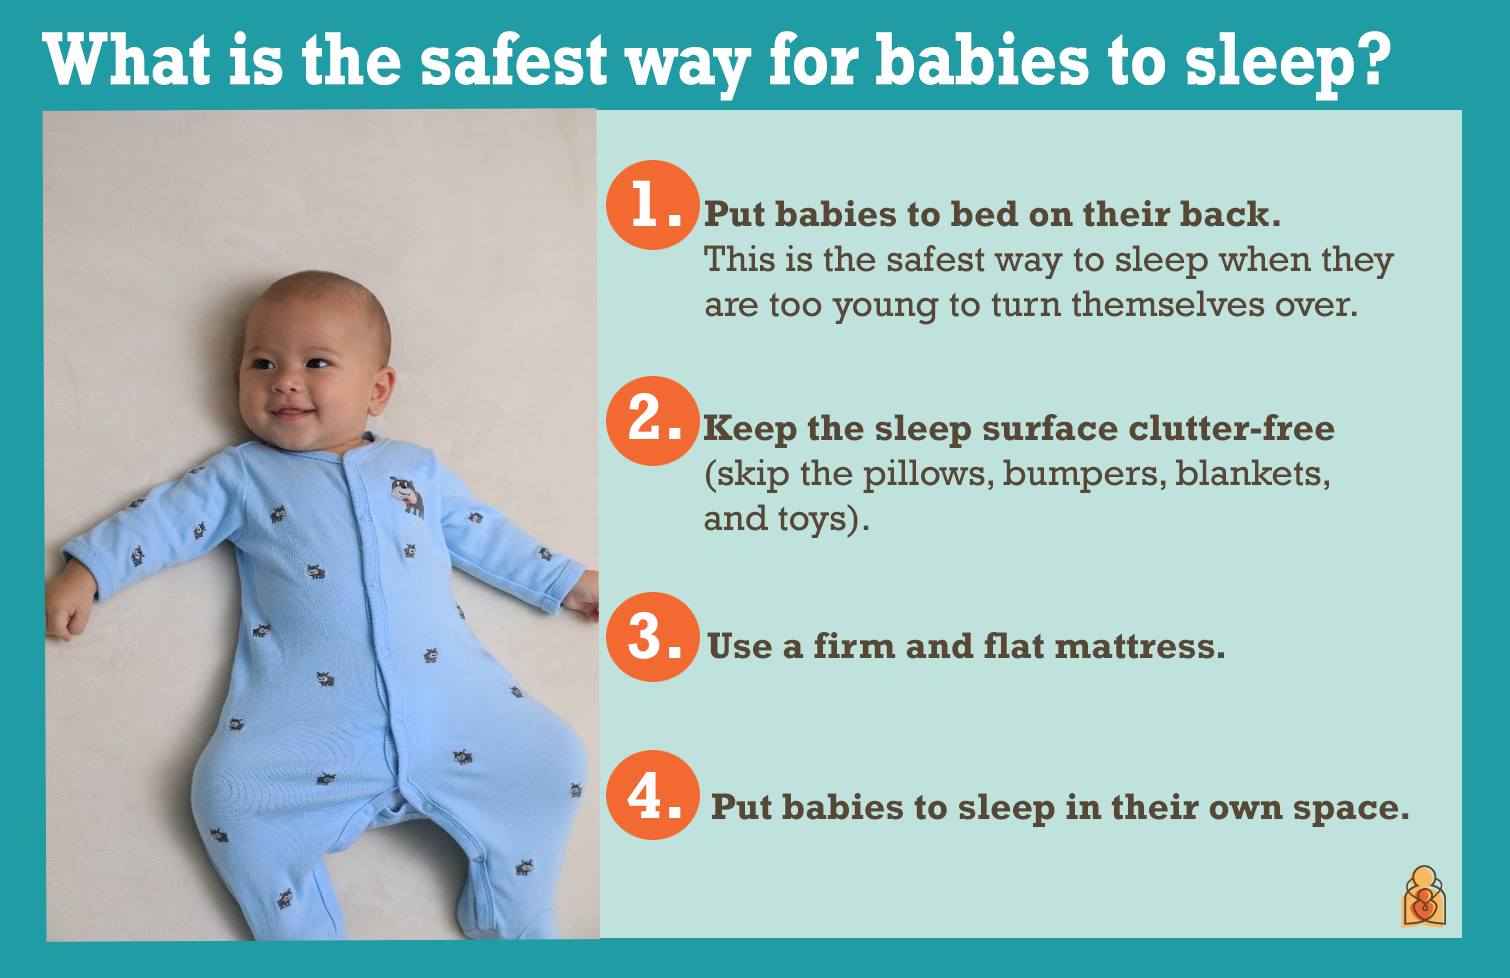 Sleep soundly while your baby sleeps safe tips from the aap